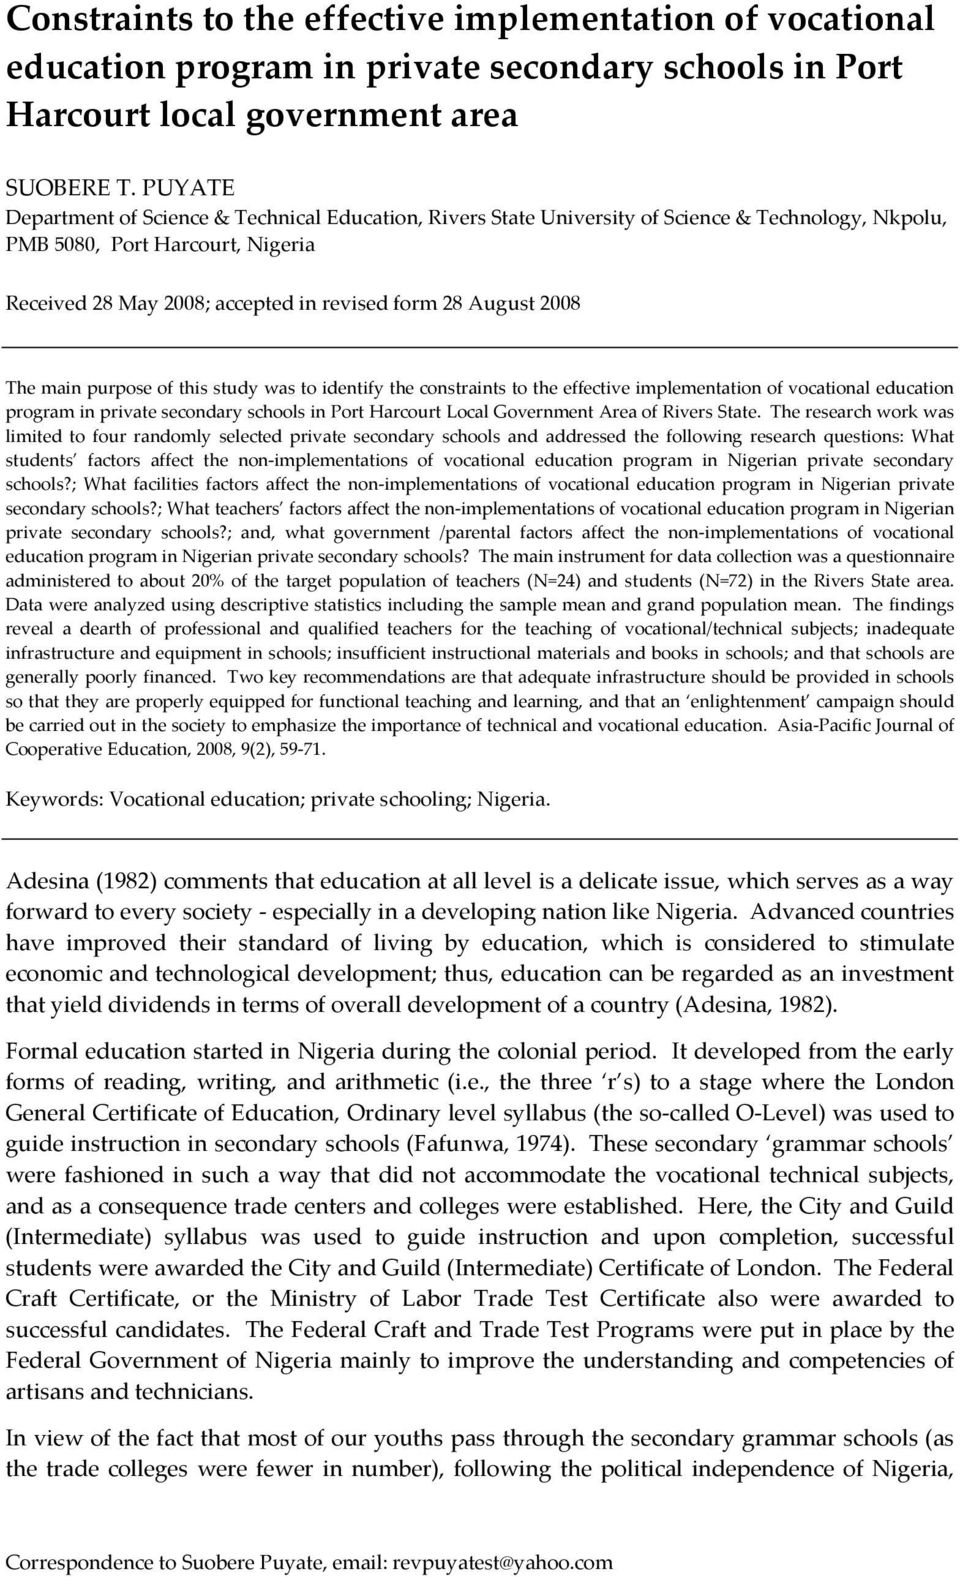 2008 The main purpose of this study was to identify the constraints to the effective implementation of vocational education program in private secondary schools in Port Harcourt Local Government Area